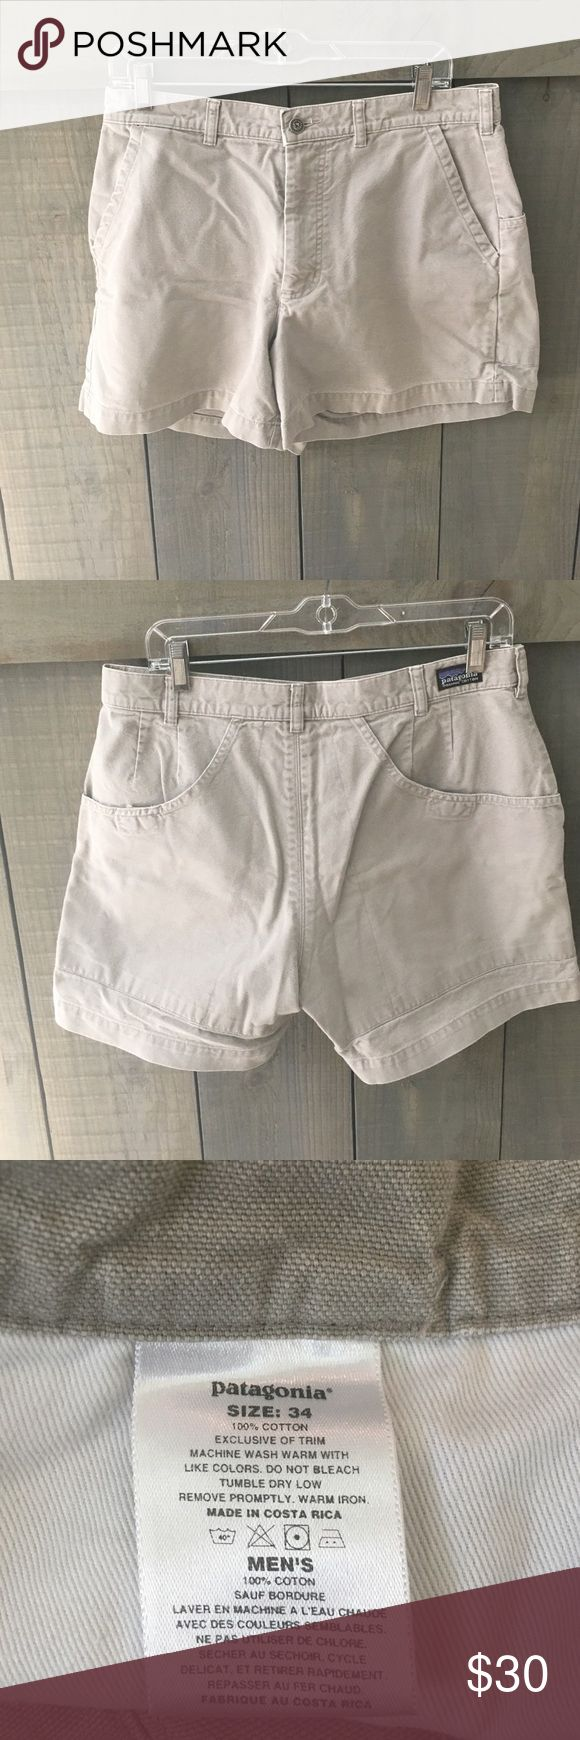 """Men's. Patagonia. Stand Up Shorts. Size 34. 5"""". Great condition. Men's Stand Up Shorts. Patagonia's most popular style of men's shorts. Size 34. 5"""" inseam. No stains, rips or tears. Patagonia Shorts"""